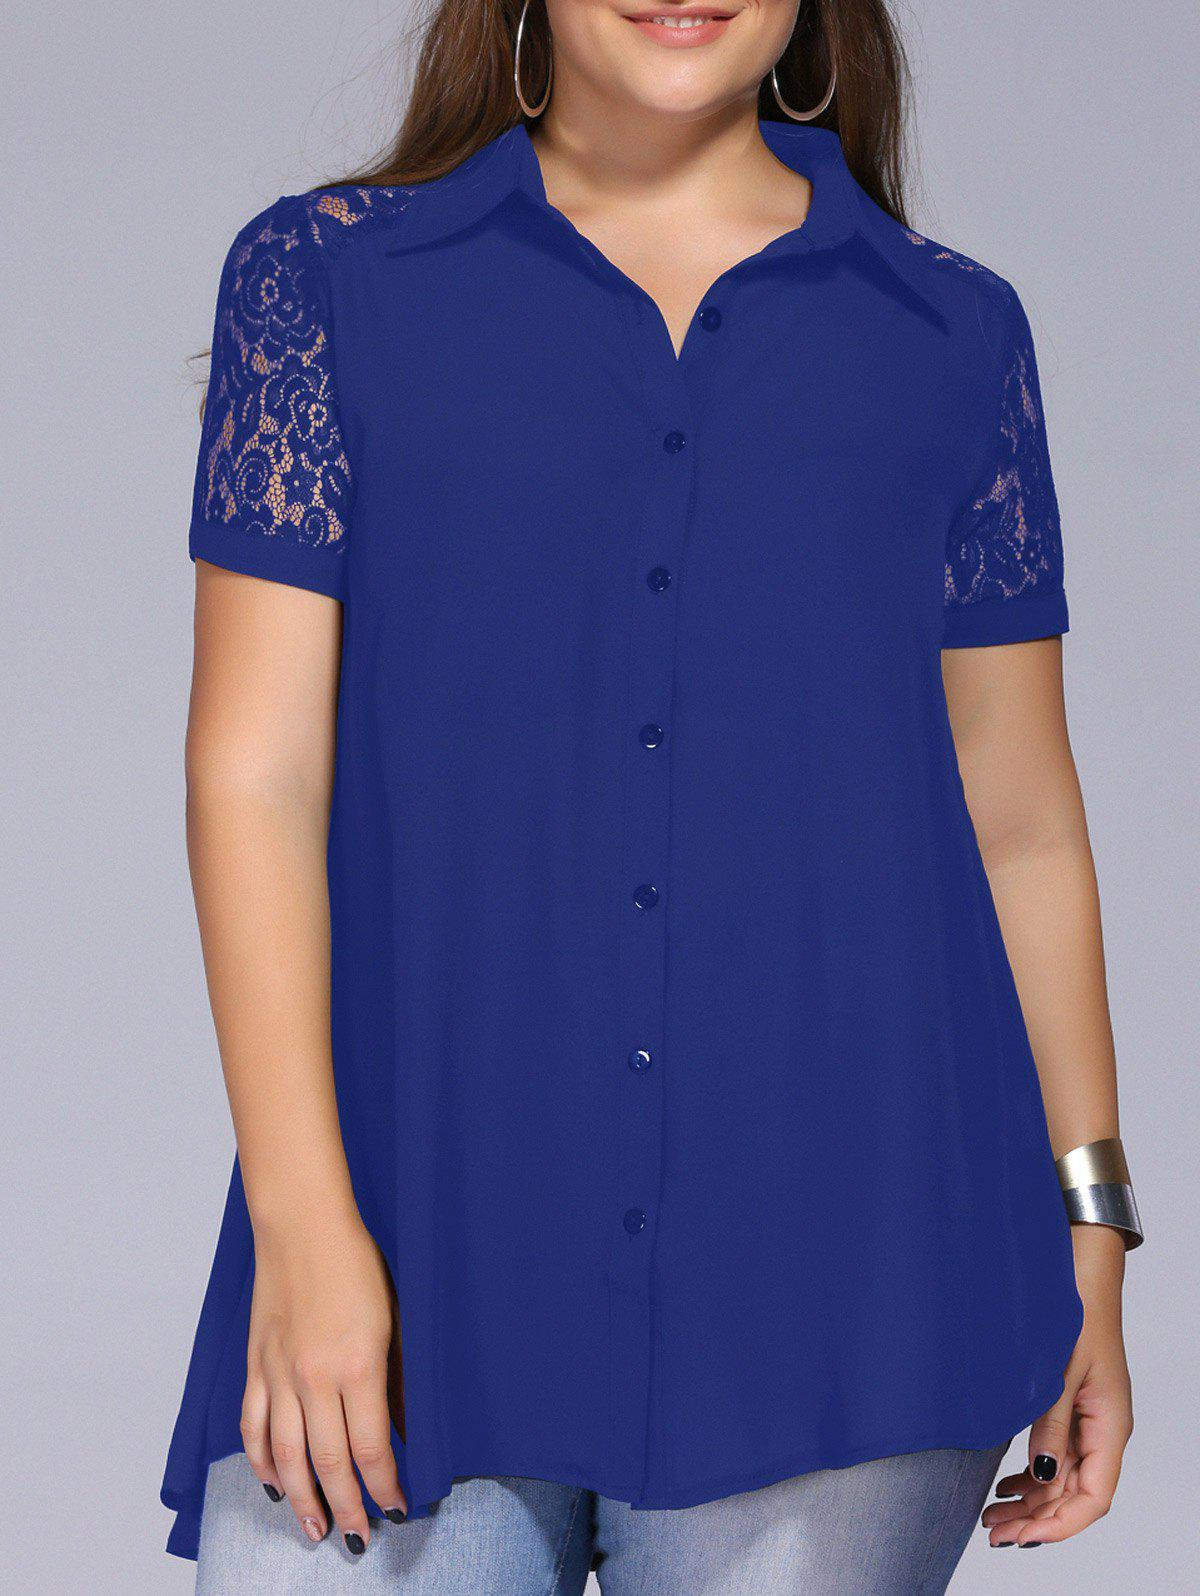 Lace Trim Plus Size Blouse - BLUE 3XL